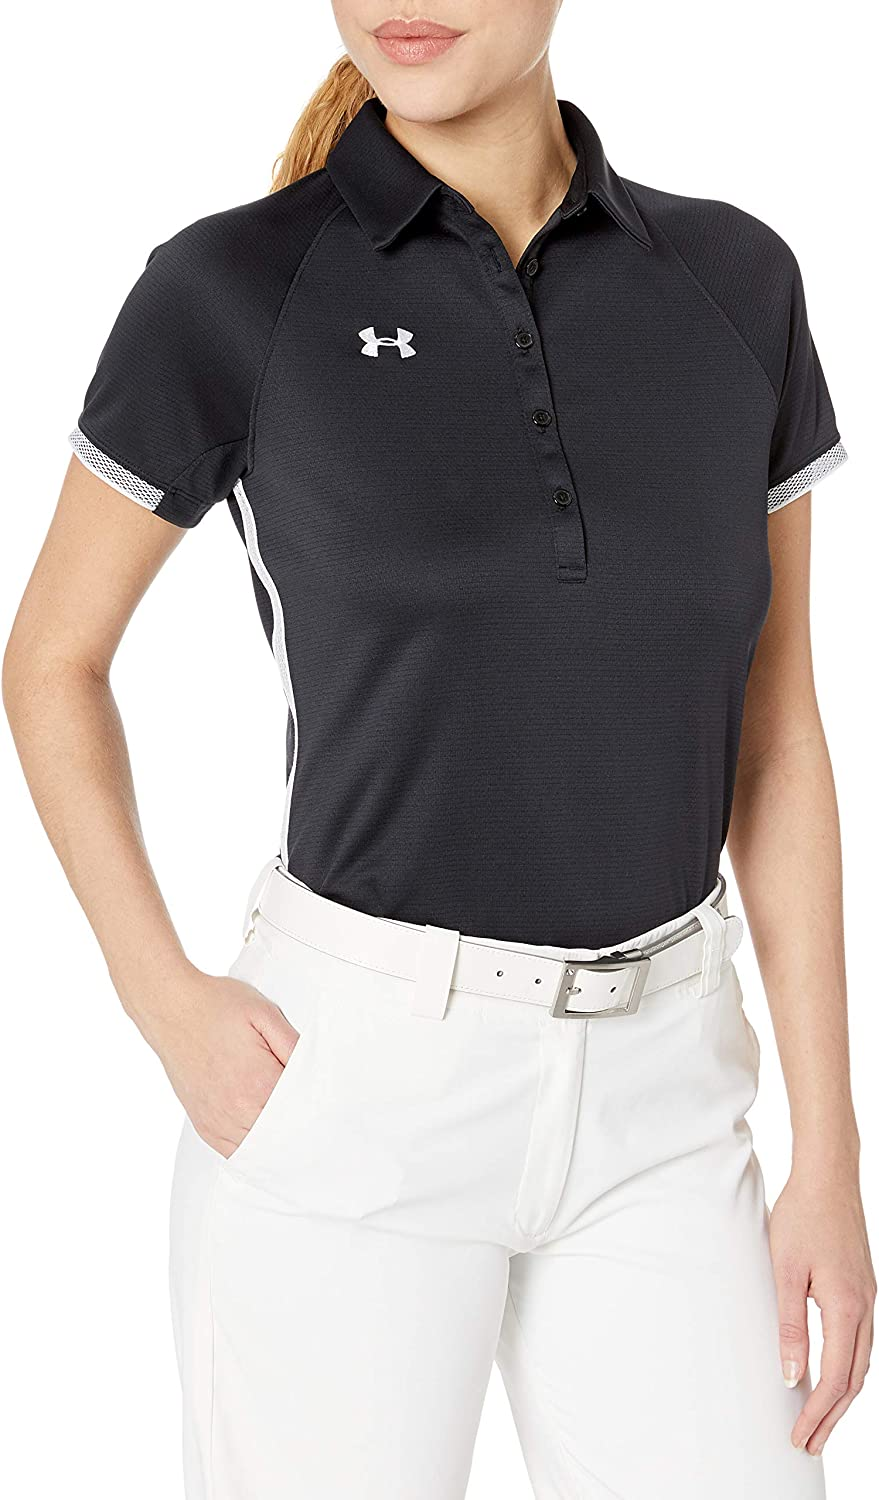 Under Armour : Clothing